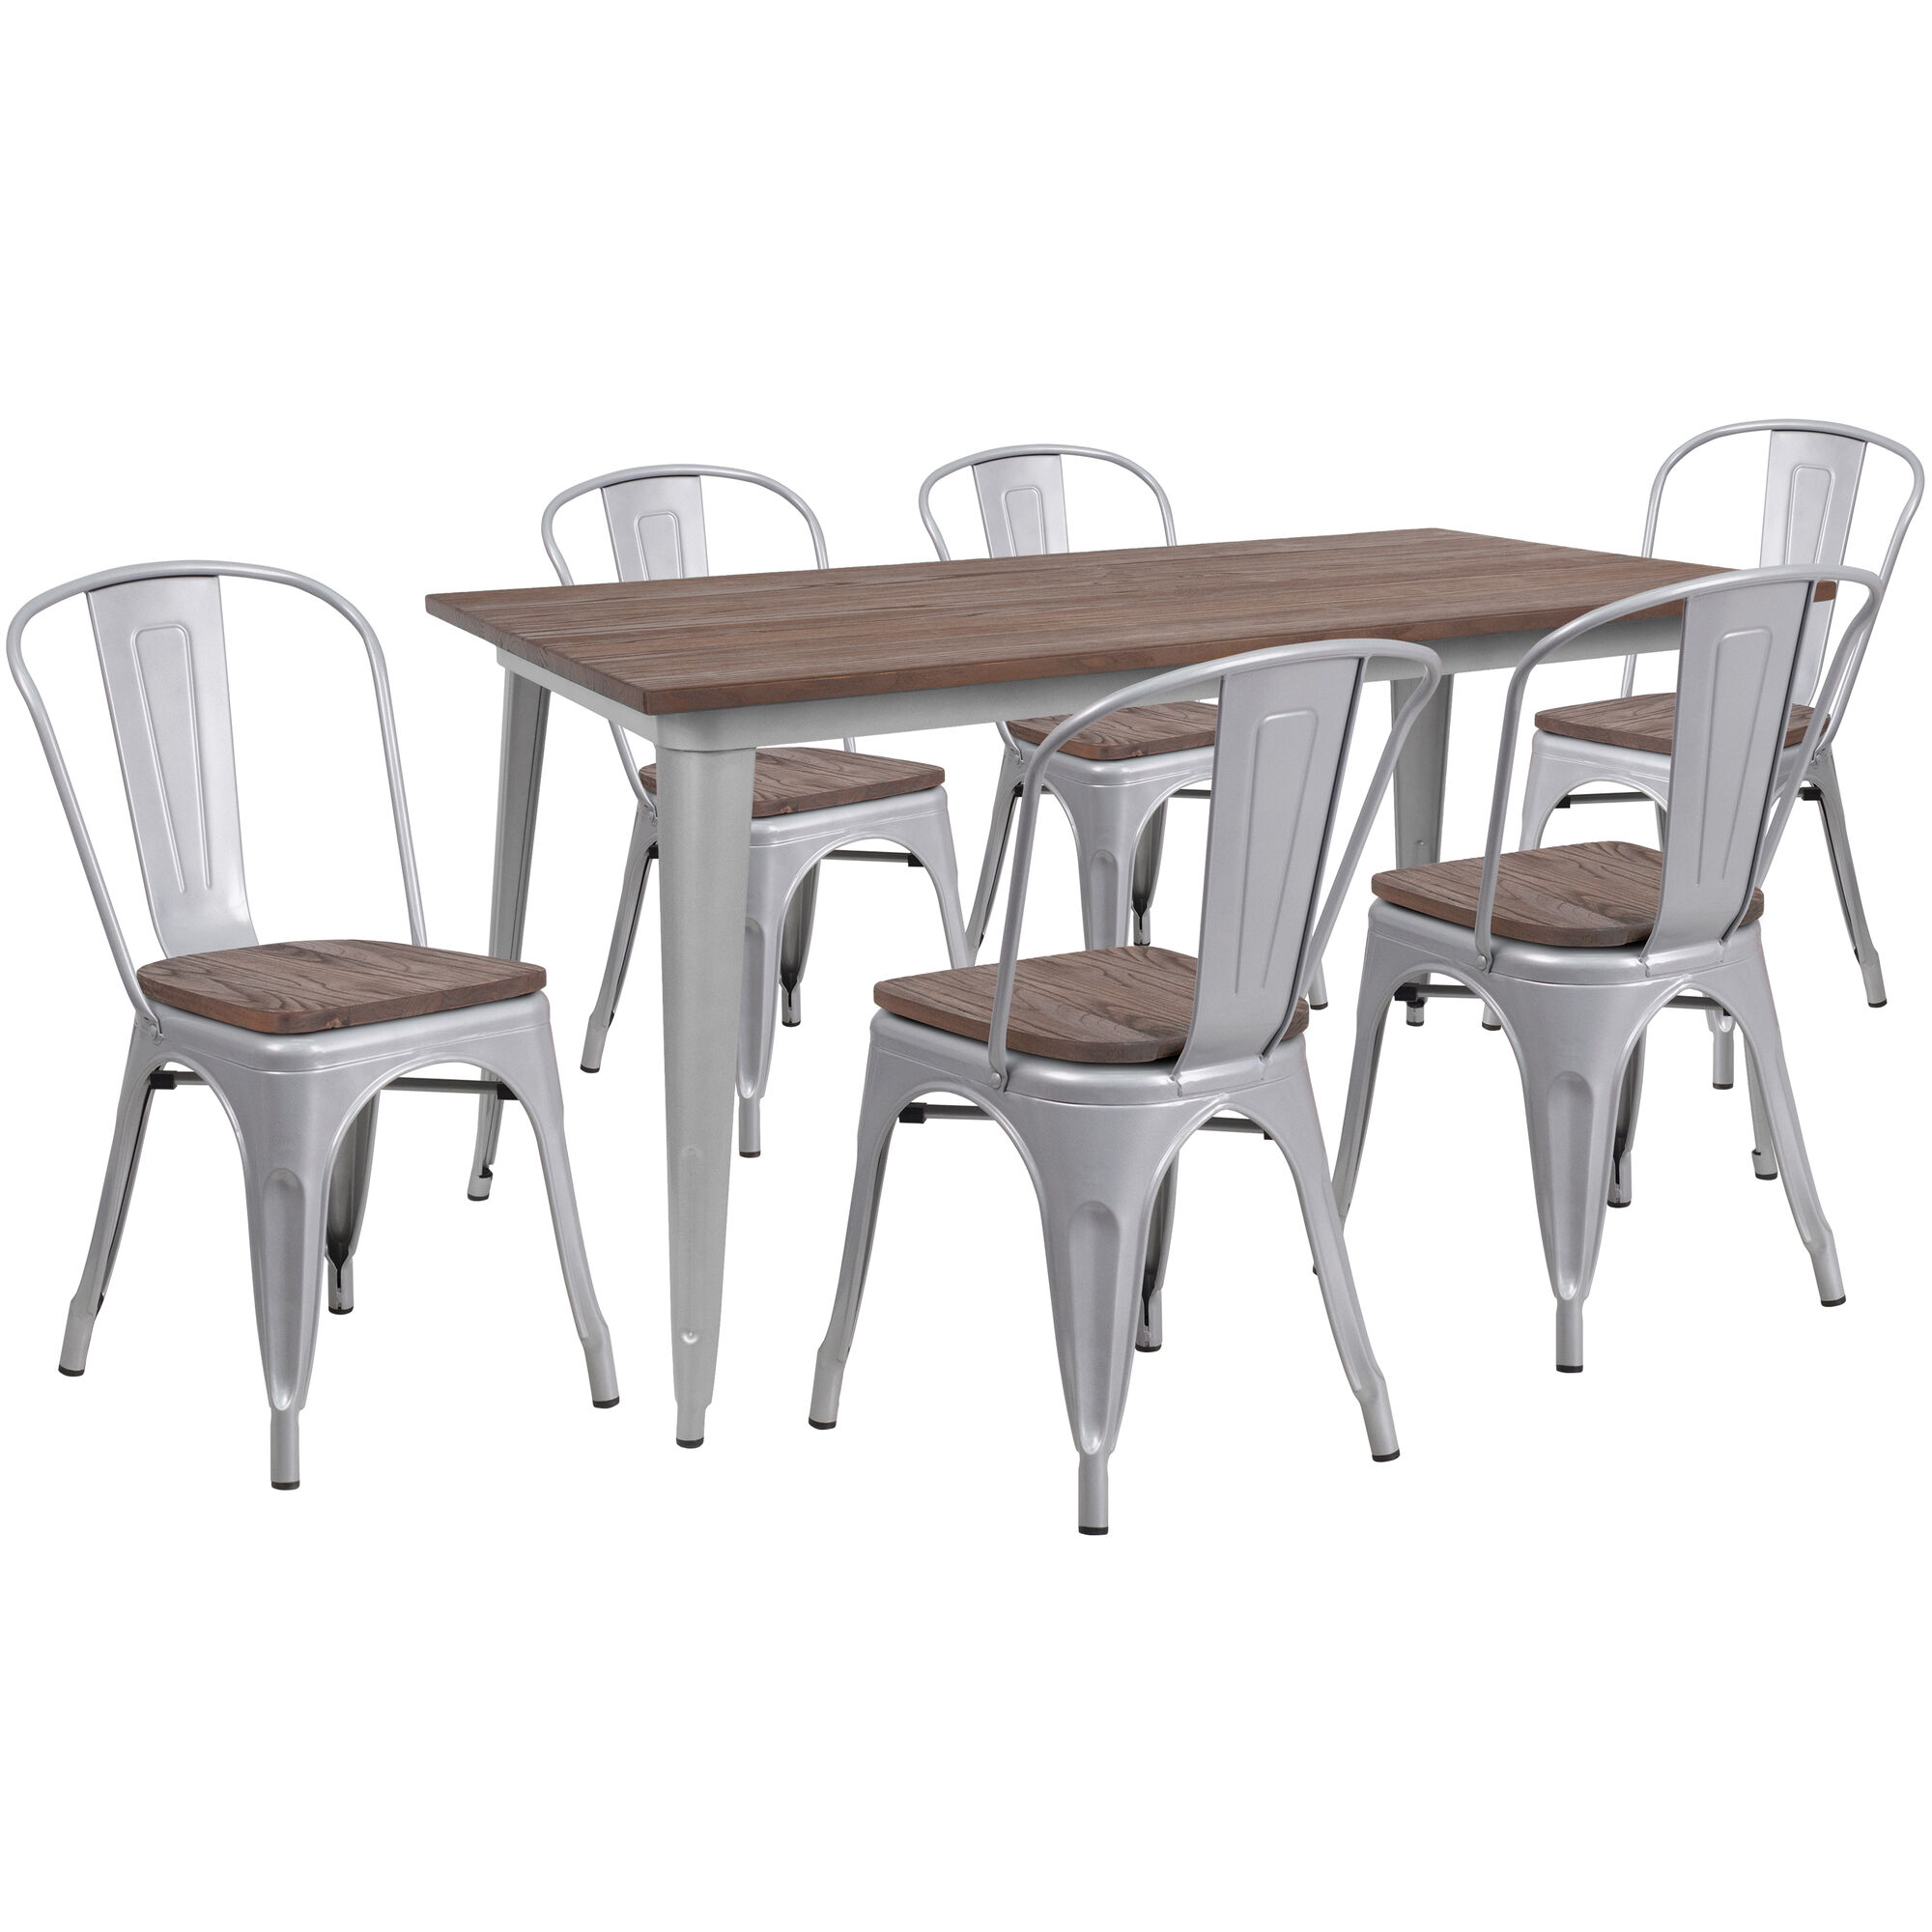 30x60 Silver Metal Table Set Ch Wd Tbch 14 Gg Stackchairs4lesscom